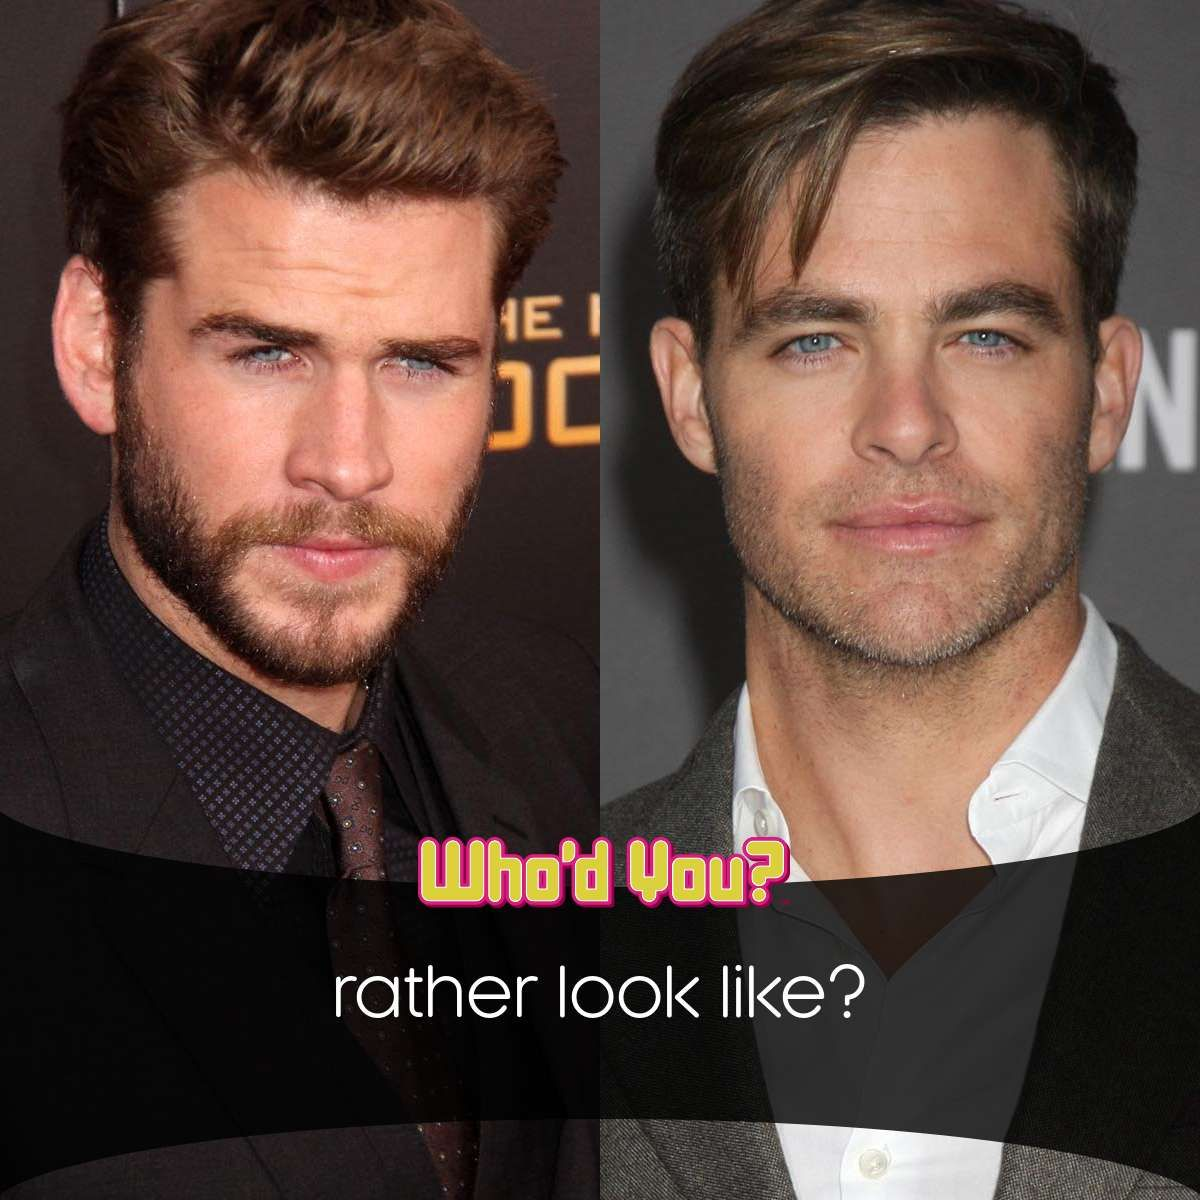 Liam Hemsworth Or Chris Pine? If You Could Look Like